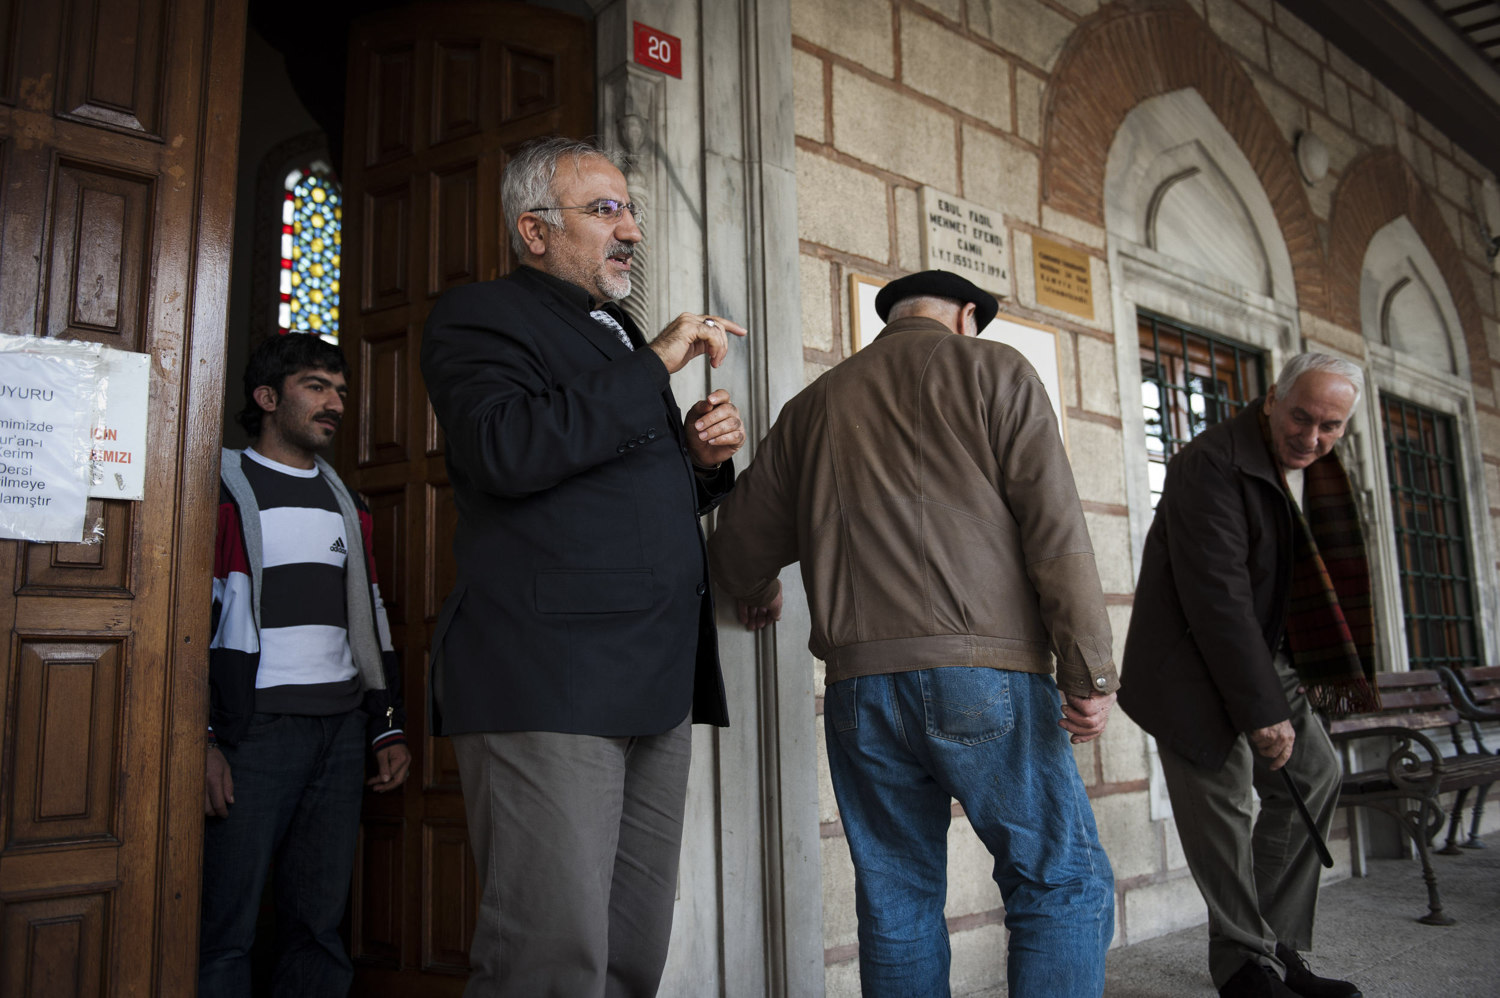 Imam Mehmet greets his worshipers after midday prayer at Ebul Fadil Mehmet Efendi Cami in Cihangir where he has been the Imam for over five years. Imams and other religions scholars attend singing lessons held by the Beyoglu Müftülüğü¸ in Istanbul Turkey.